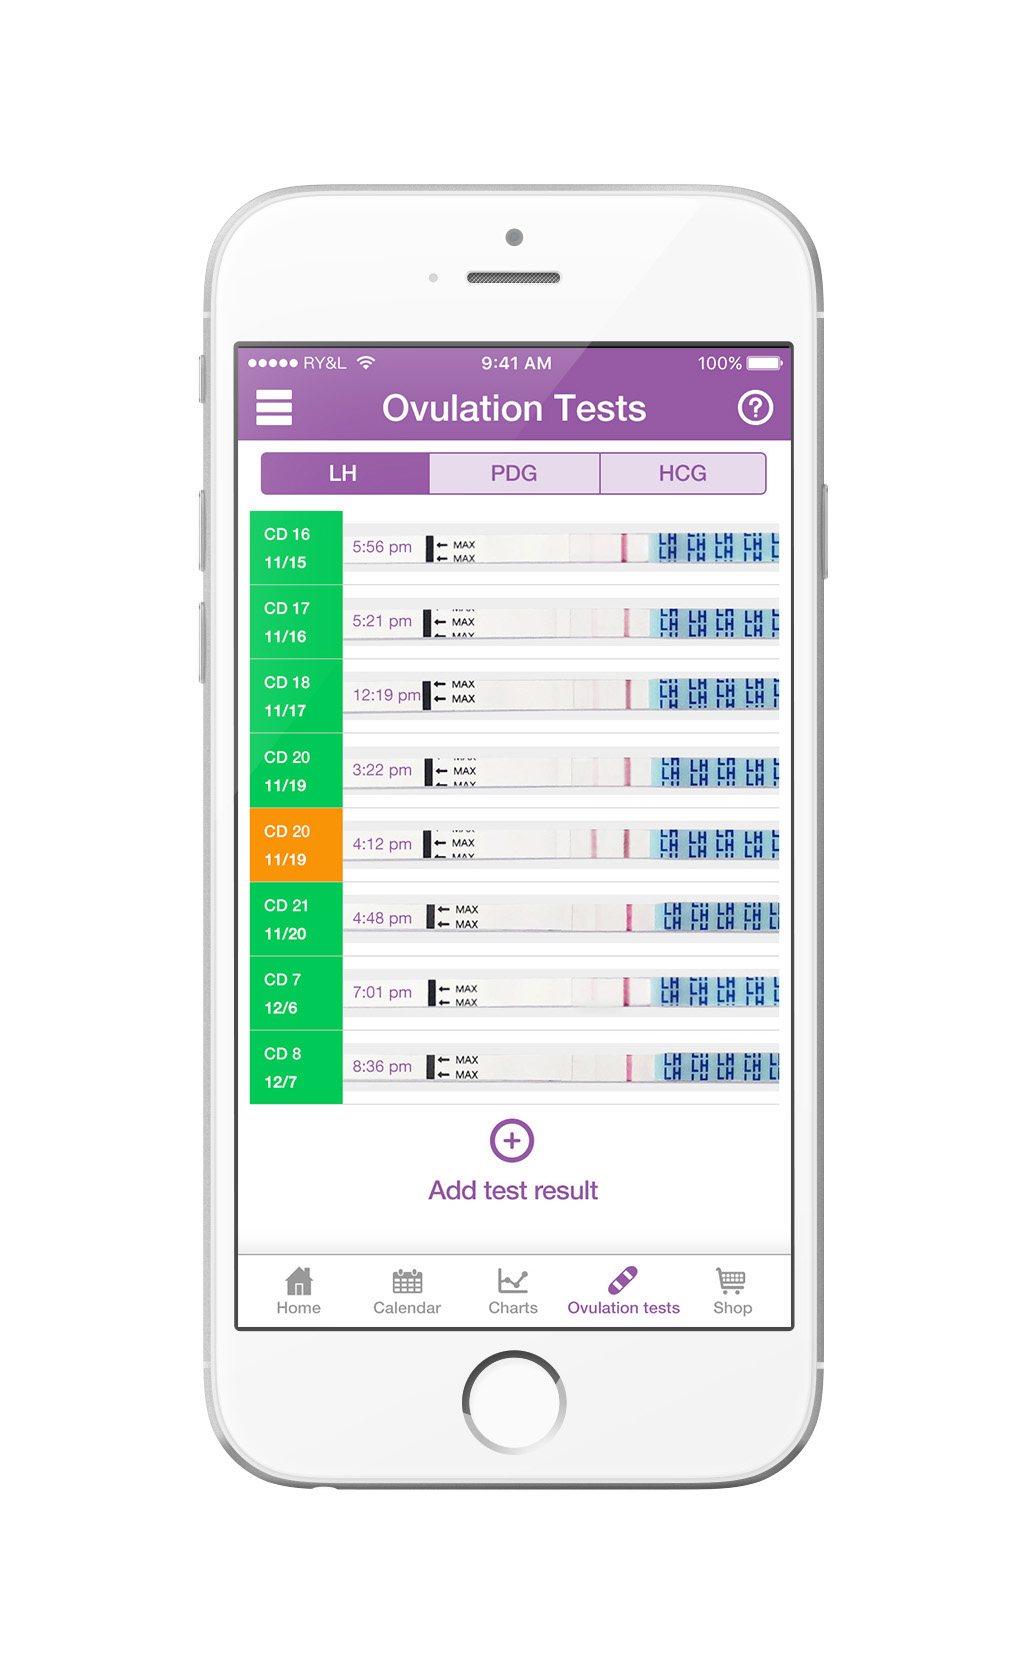 ovulation tests gallery-03.jpg